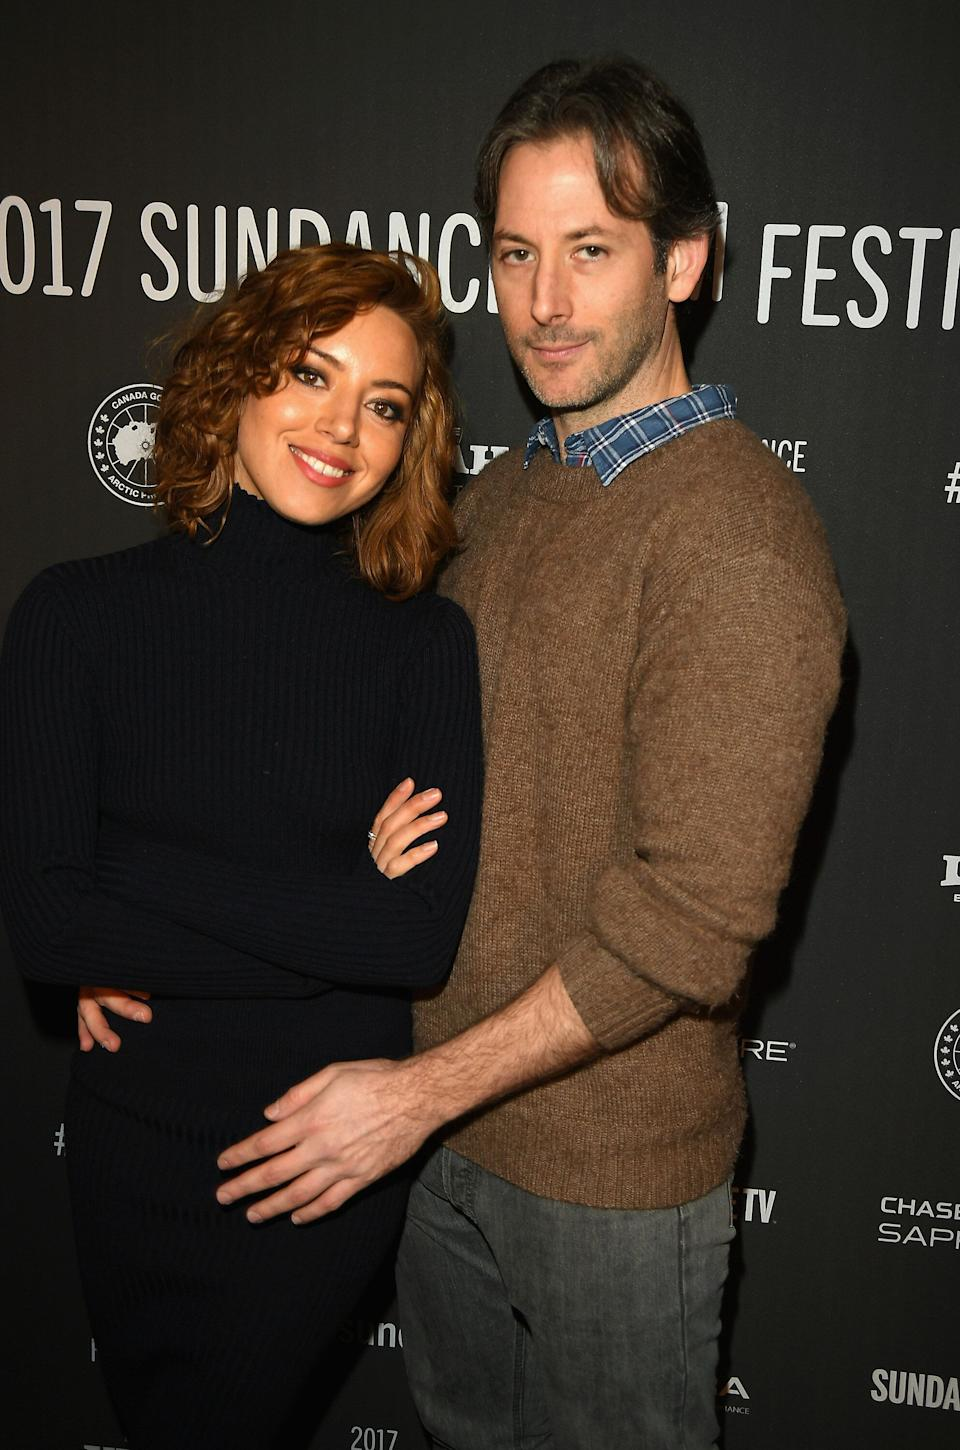 """Aubrey Plaza and Jeff Baena attend """"The Little Hours"""" premiere in 2017. (Photo: George Pimentel via Getty Images)"""